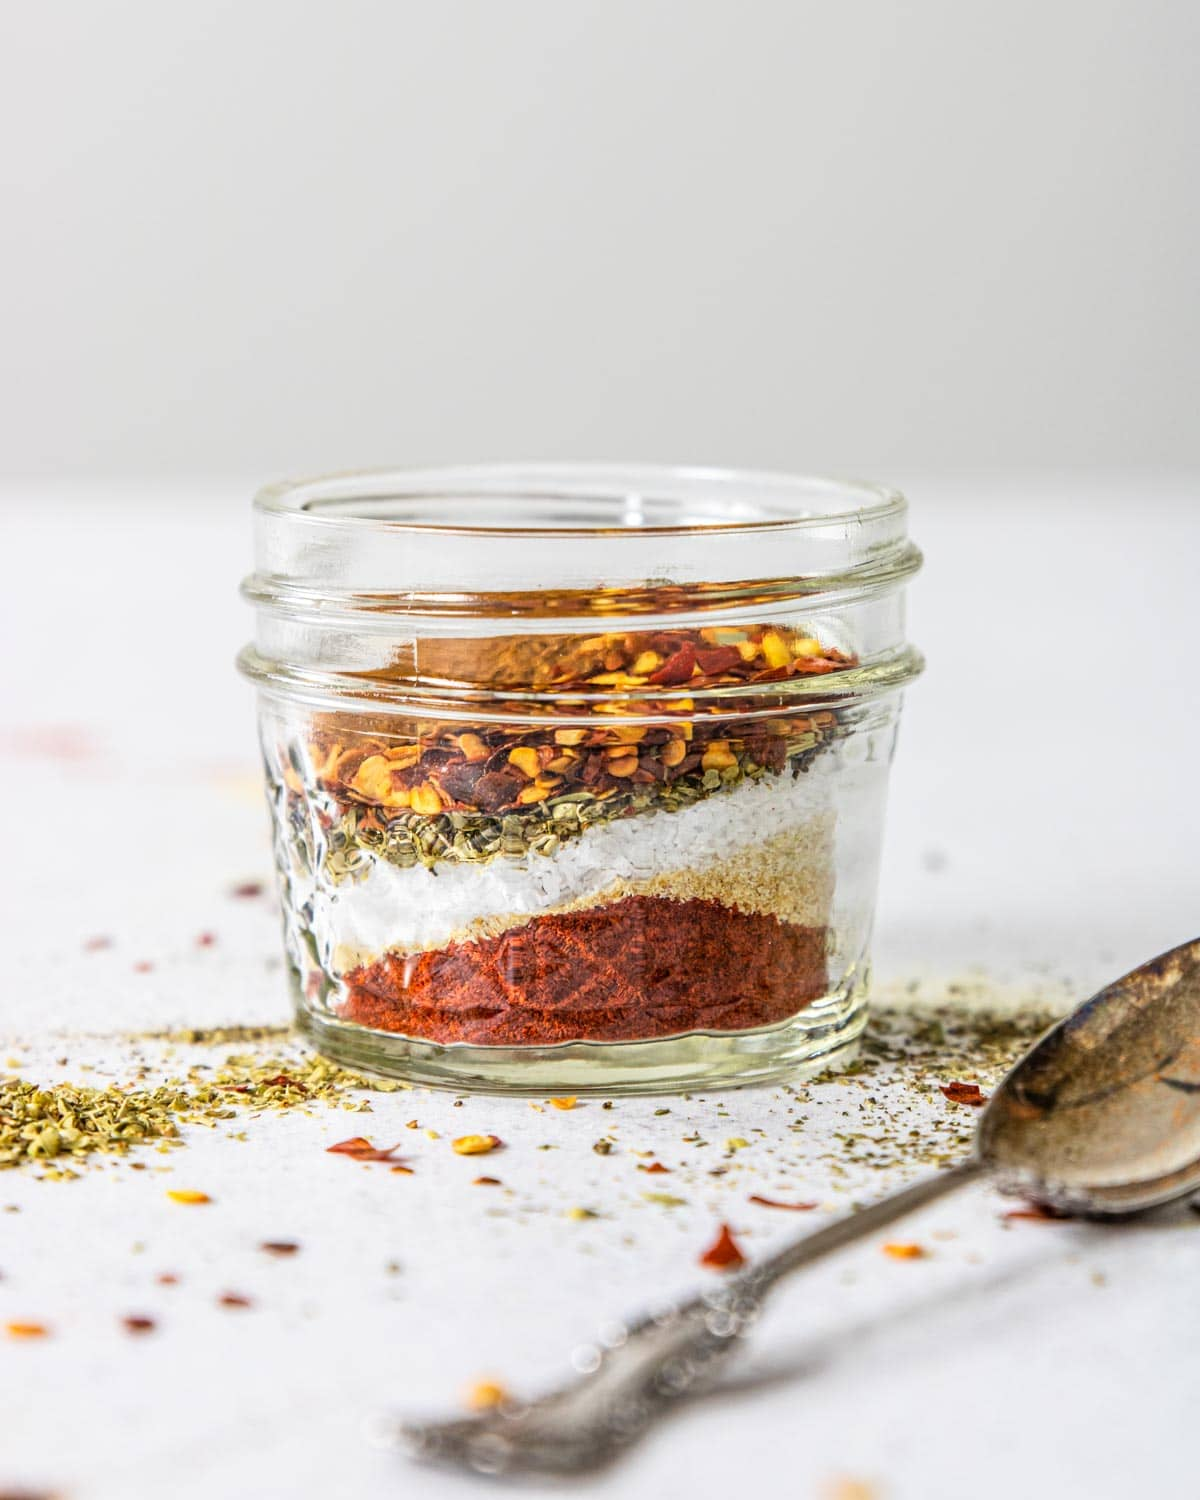 a jar that has defined layers of spices and seasonings